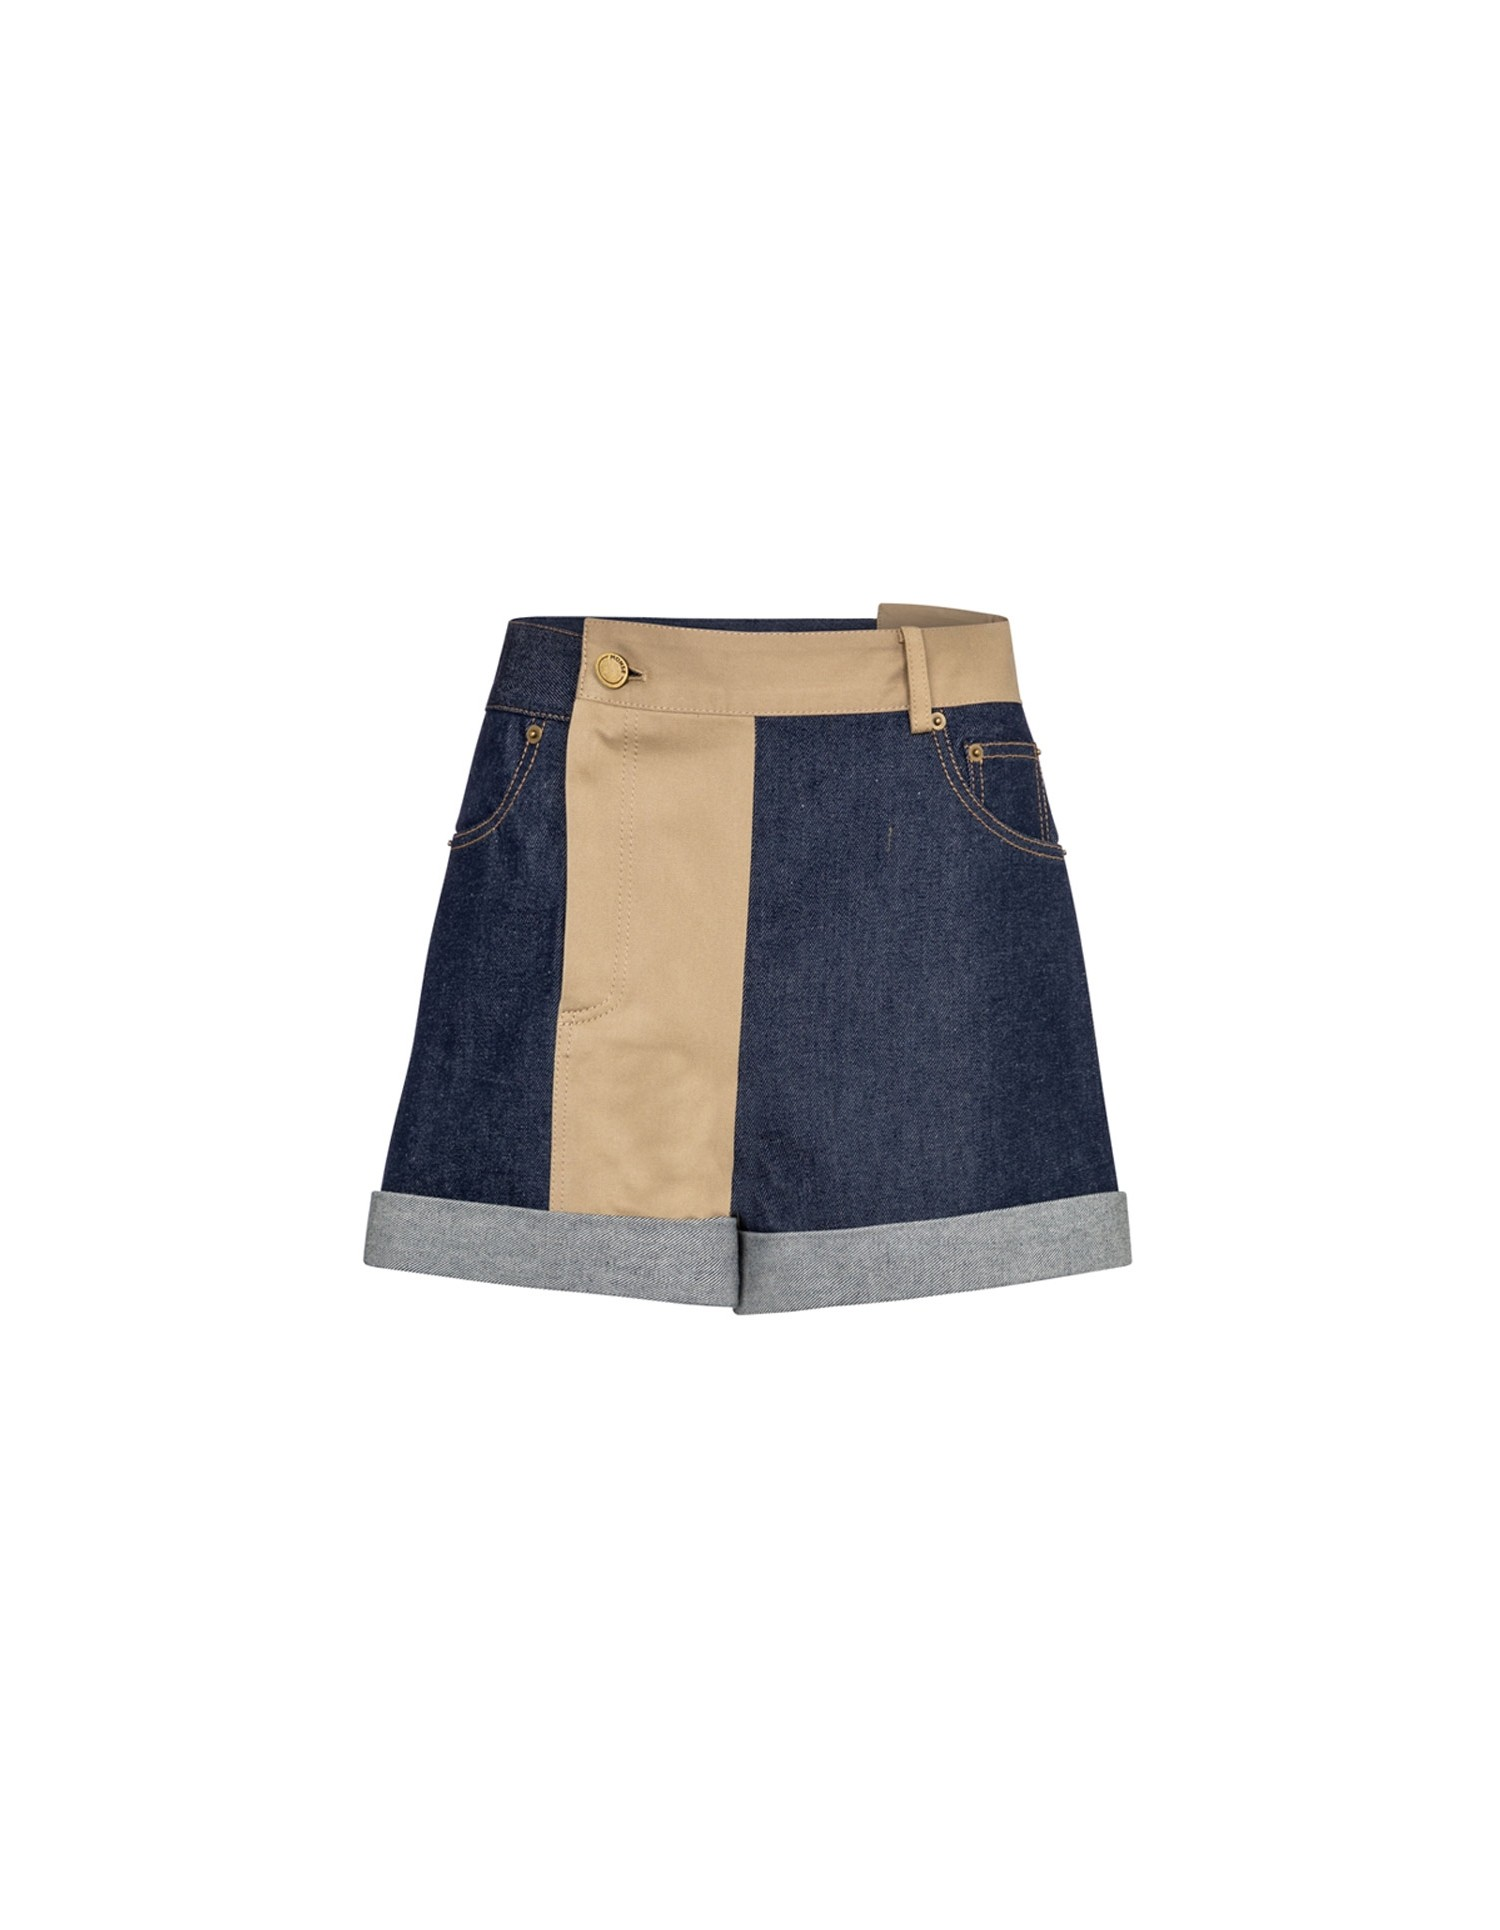 MONSE Patchwork Denim and Trouser Short Flat Front